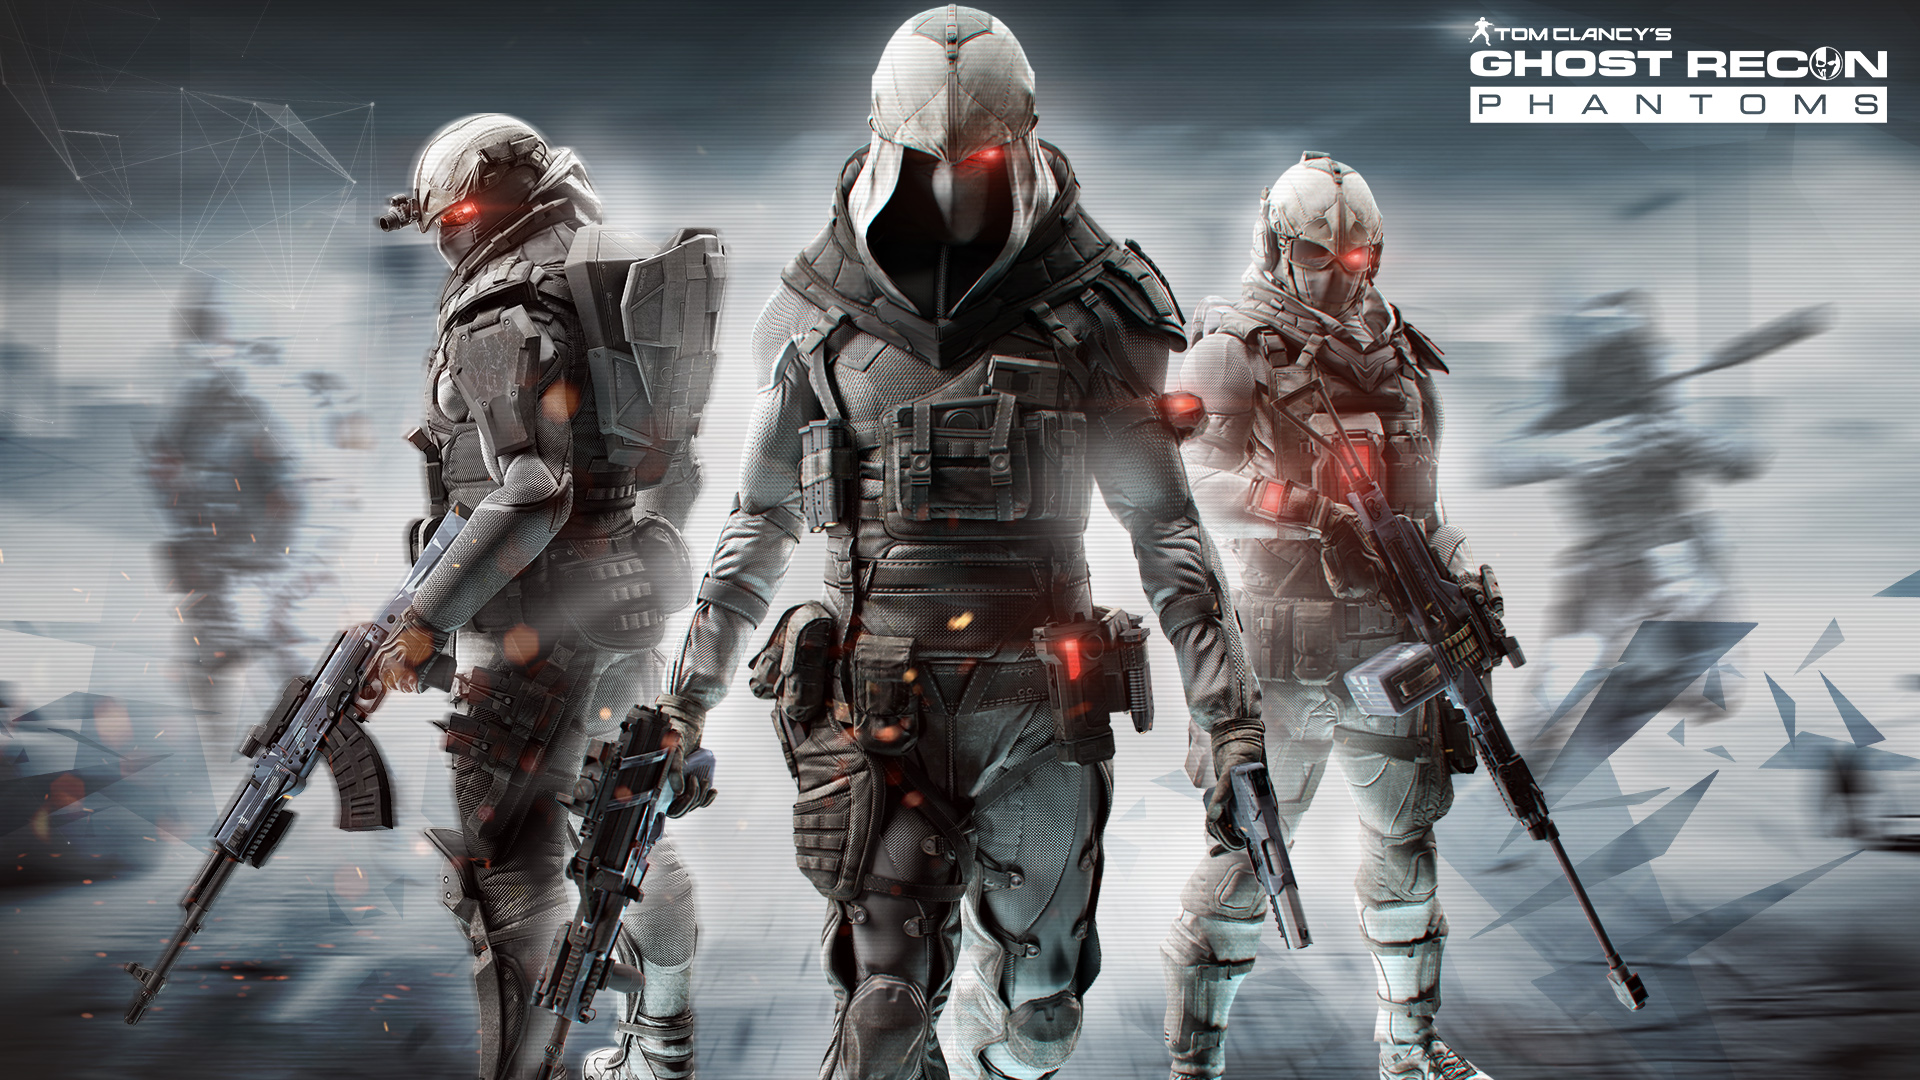 Tom Clancys Ghost Recon Phantoms Wallpapers HD Wallpapers 1920x1080